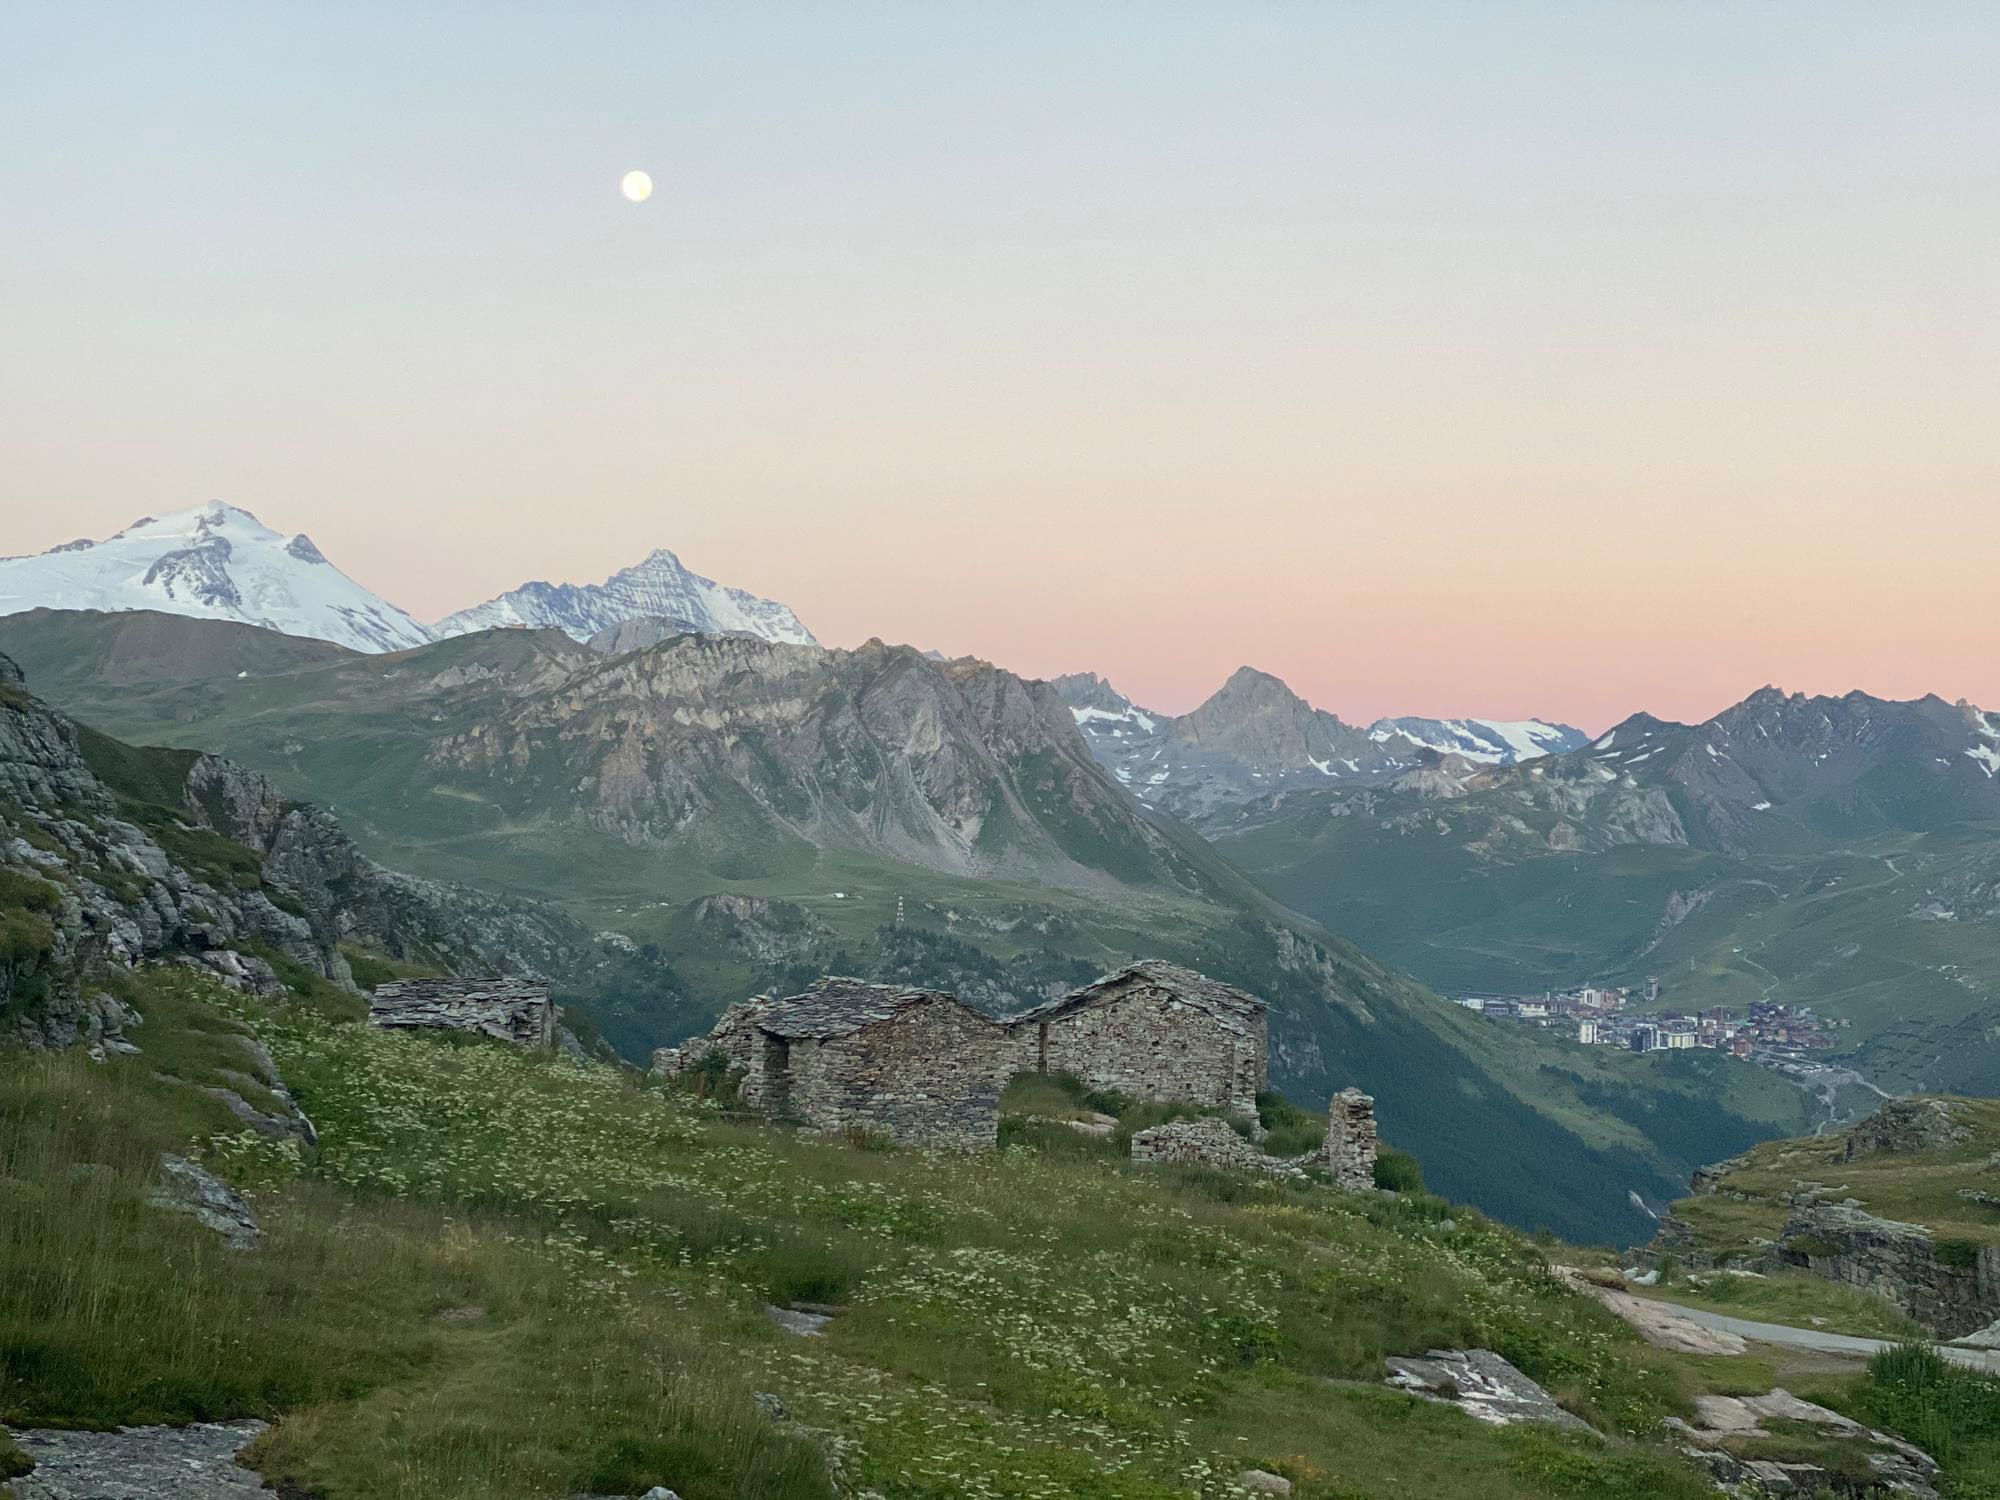 608/Photos/Paysages/hotel-edelweiss-ambiance-exterieur-005.jpg